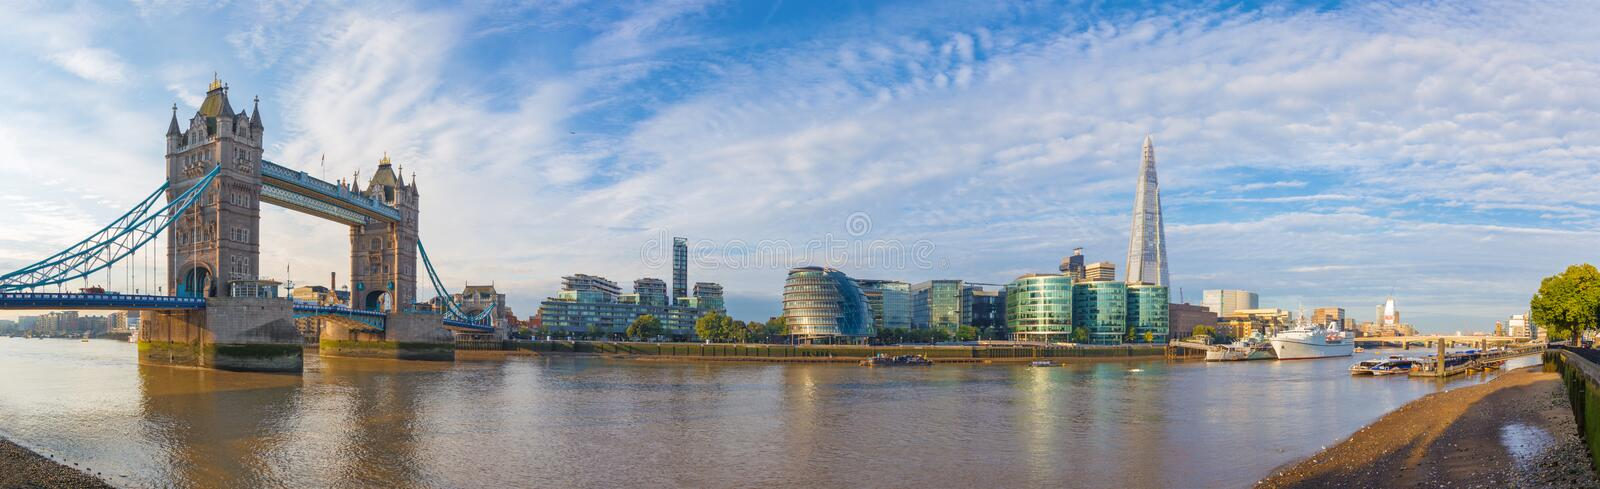 London - The panorama with the Tower bridge Town hall and riverside in the morning light stock photos